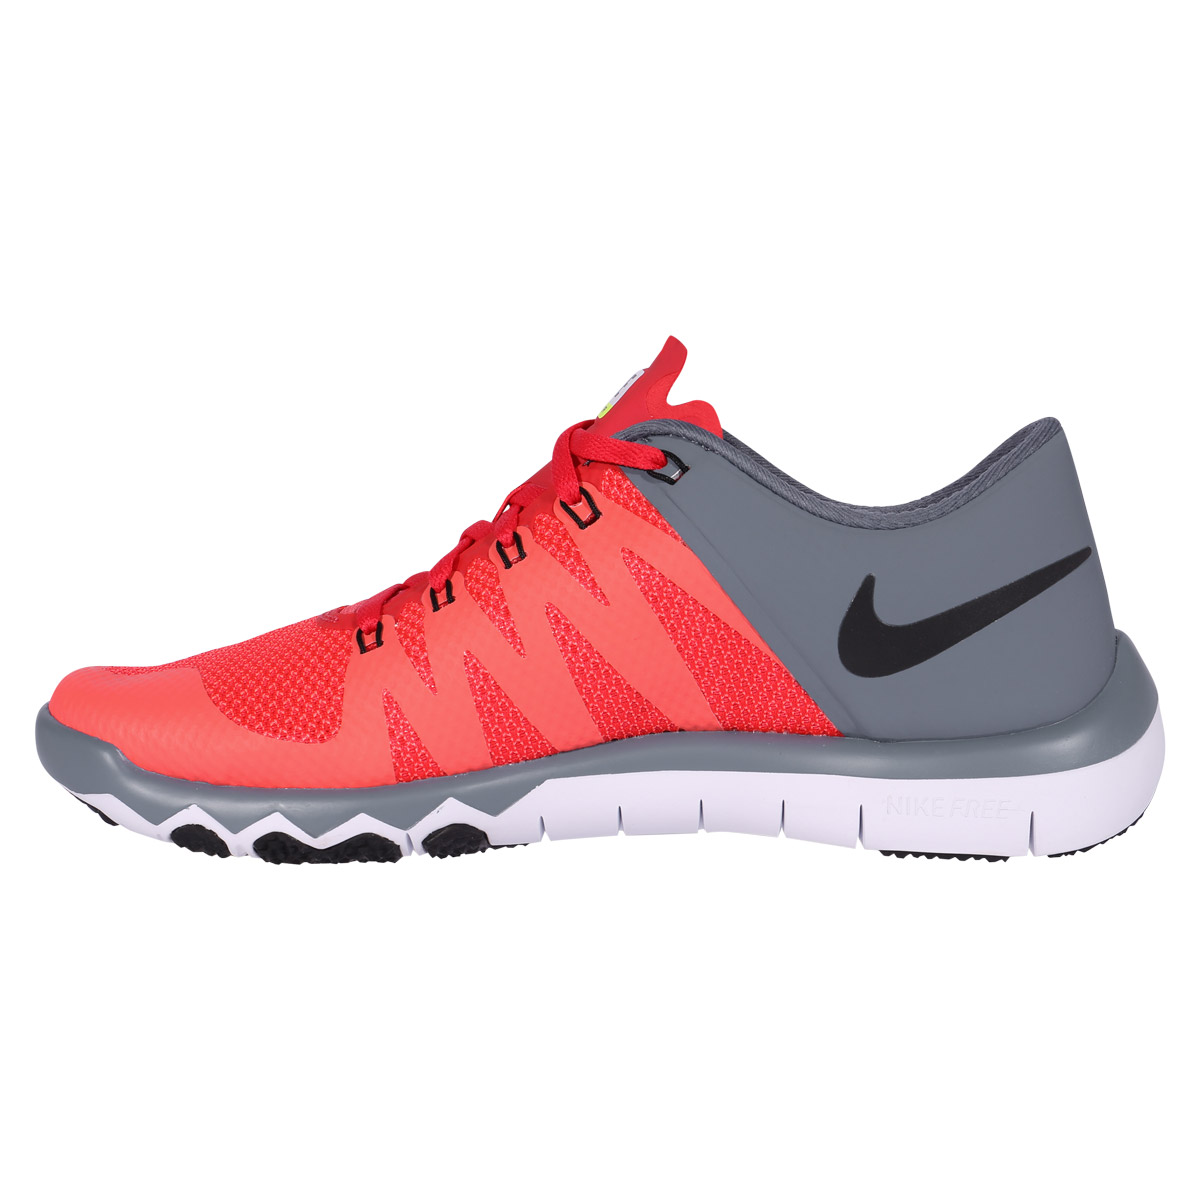 nike free trainer 5 0 v6 men 39 s training shoe darling red graphite black. Black Bedroom Furniture Sets. Home Design Ideas